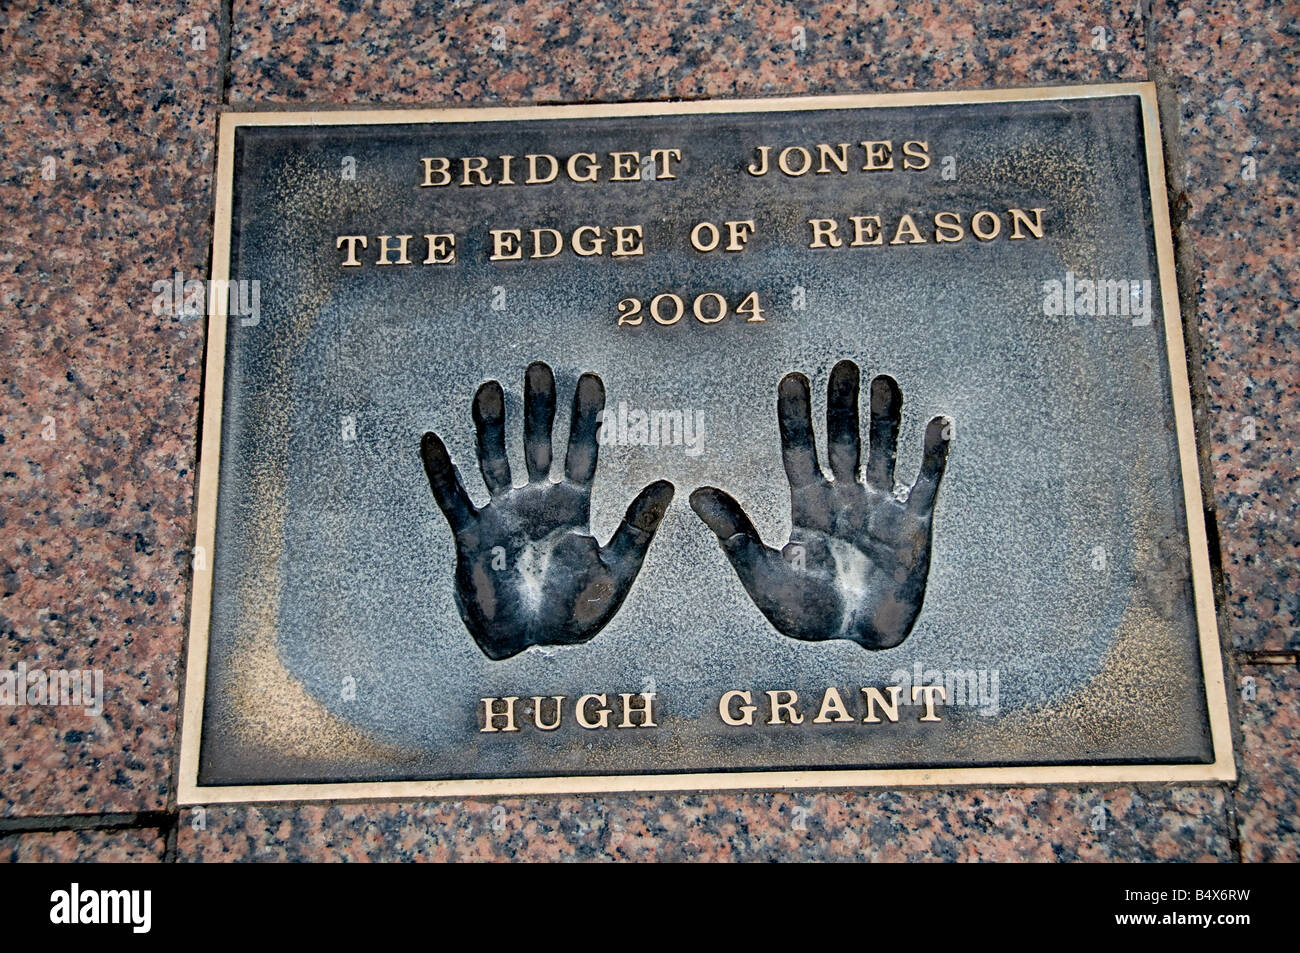 Hugh Grant Hand Foot Prints Paving Chinese Theater in Hollywood Boulevard Los Angeles - Stock Image